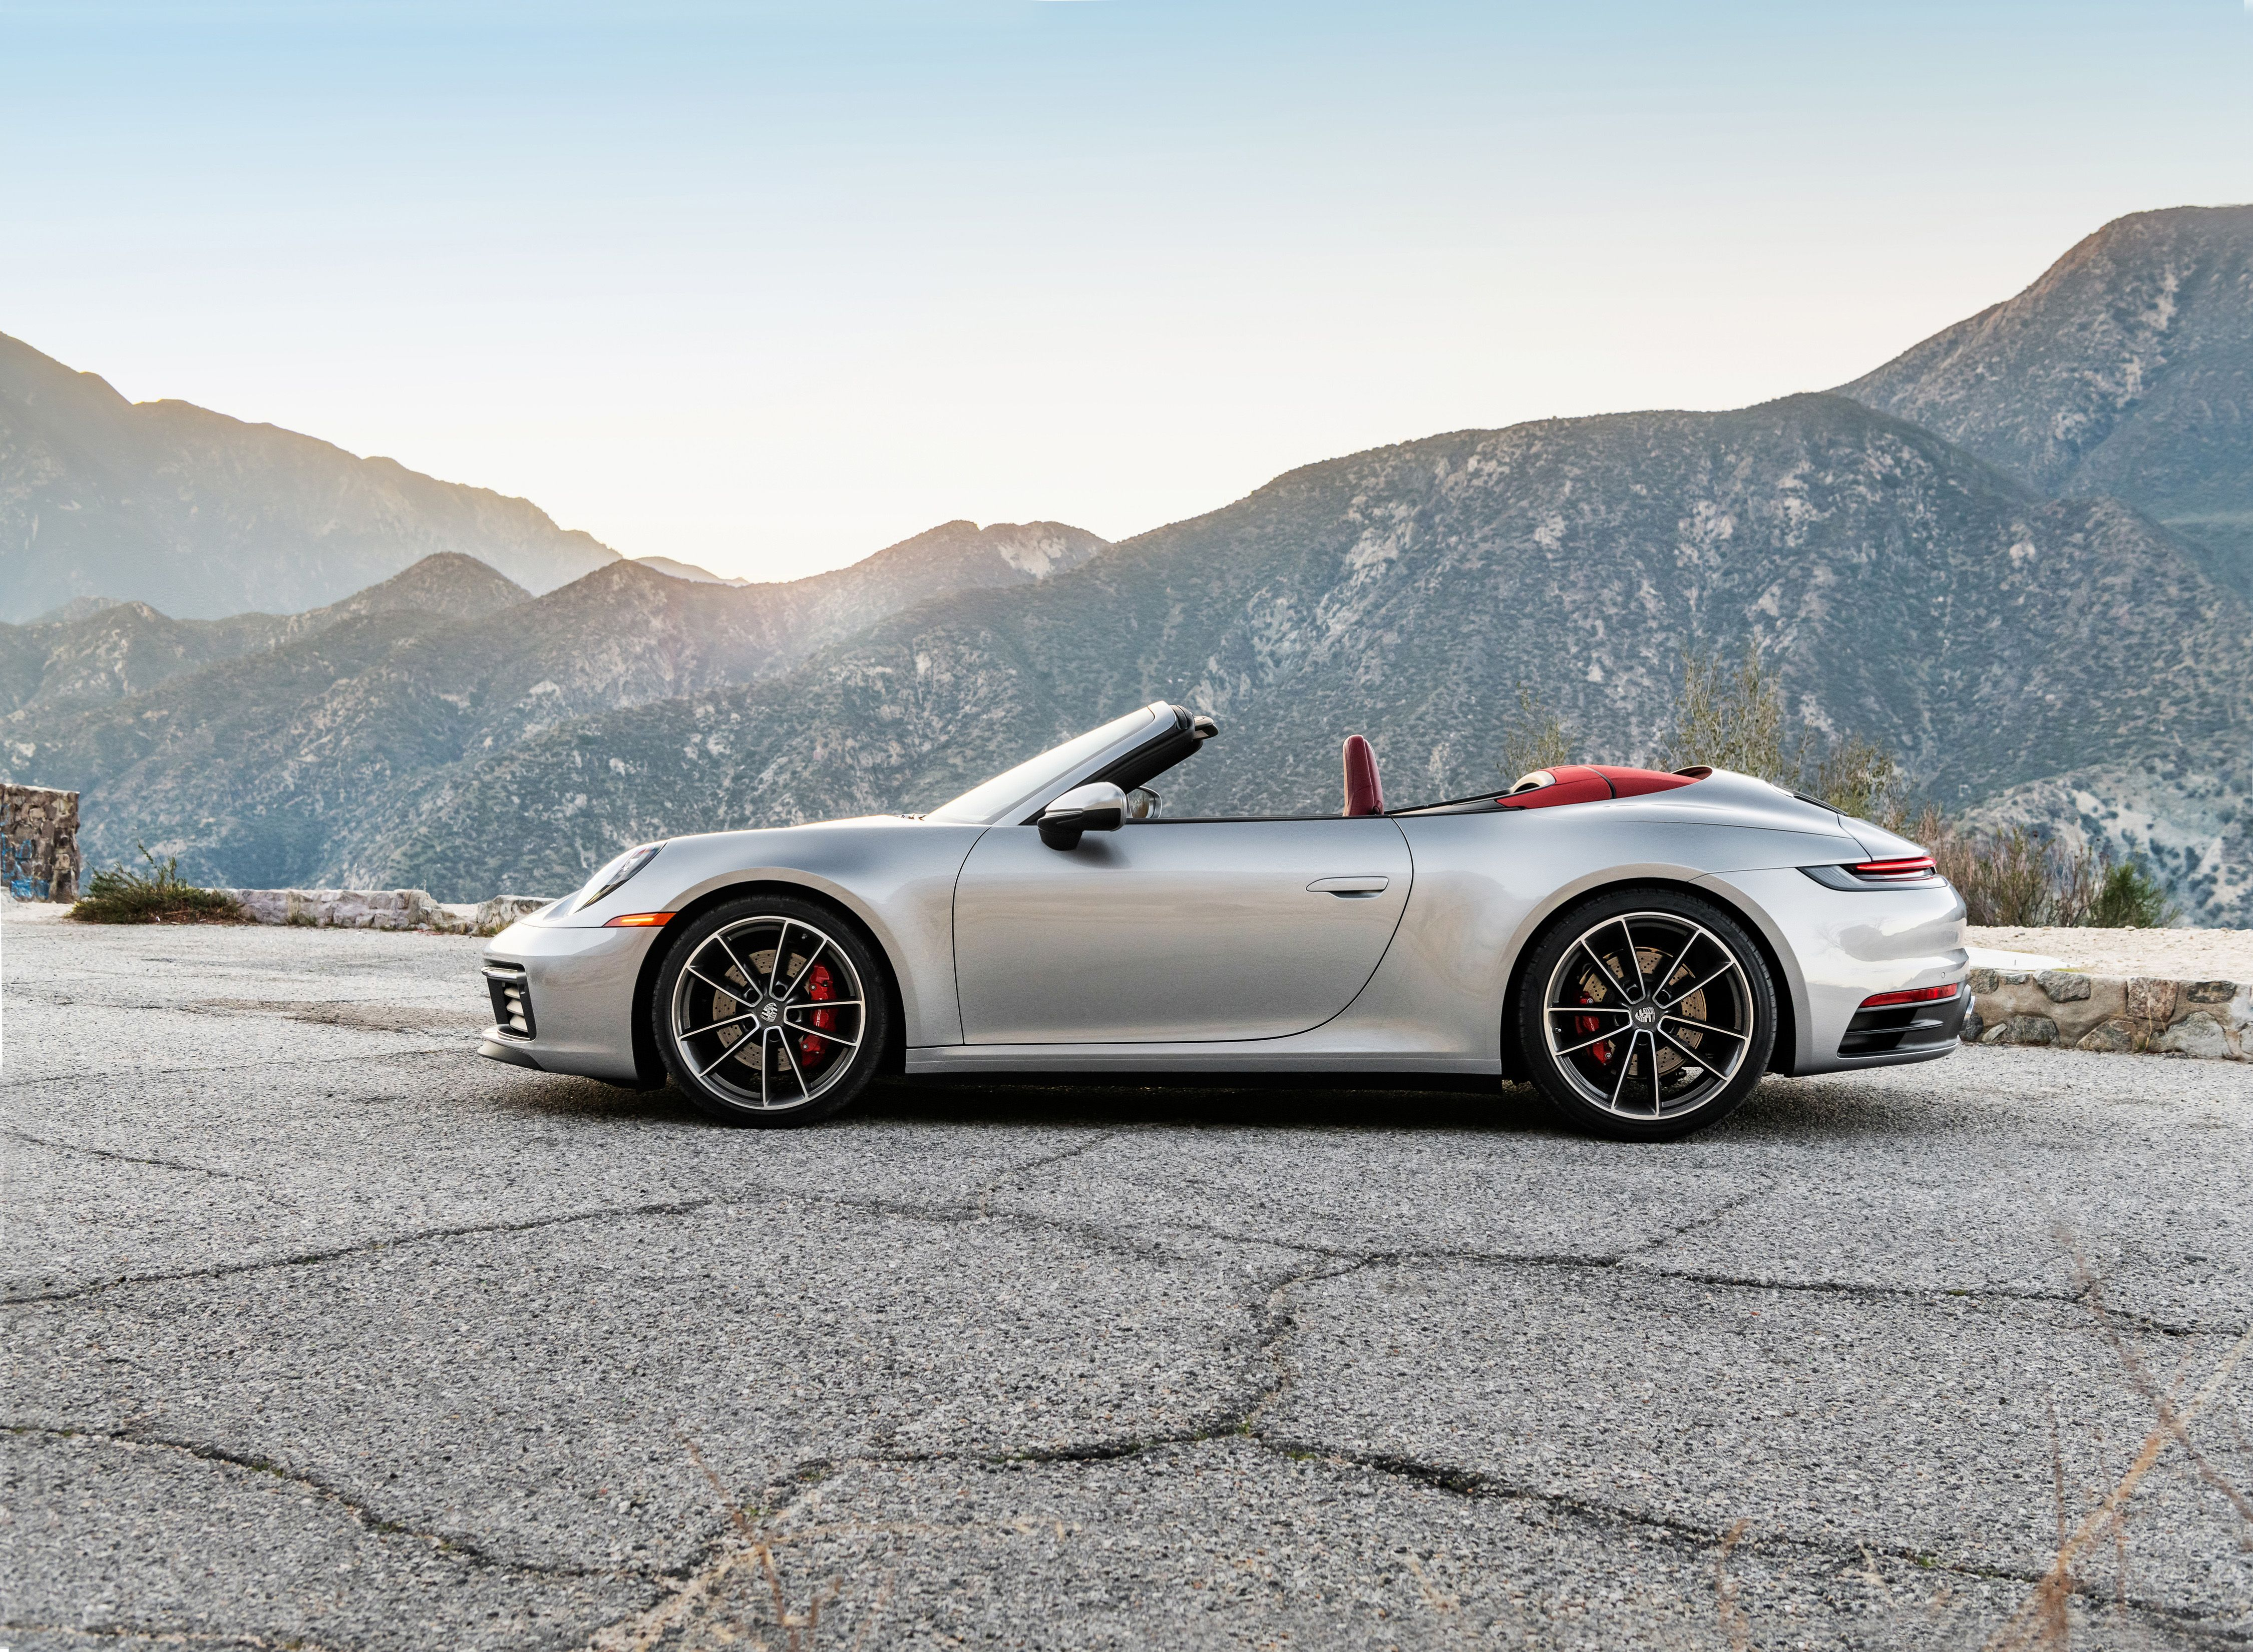 Tested 2020 Porsche 911 Carrera S Cabriolet Gives Up Little To The Coupe